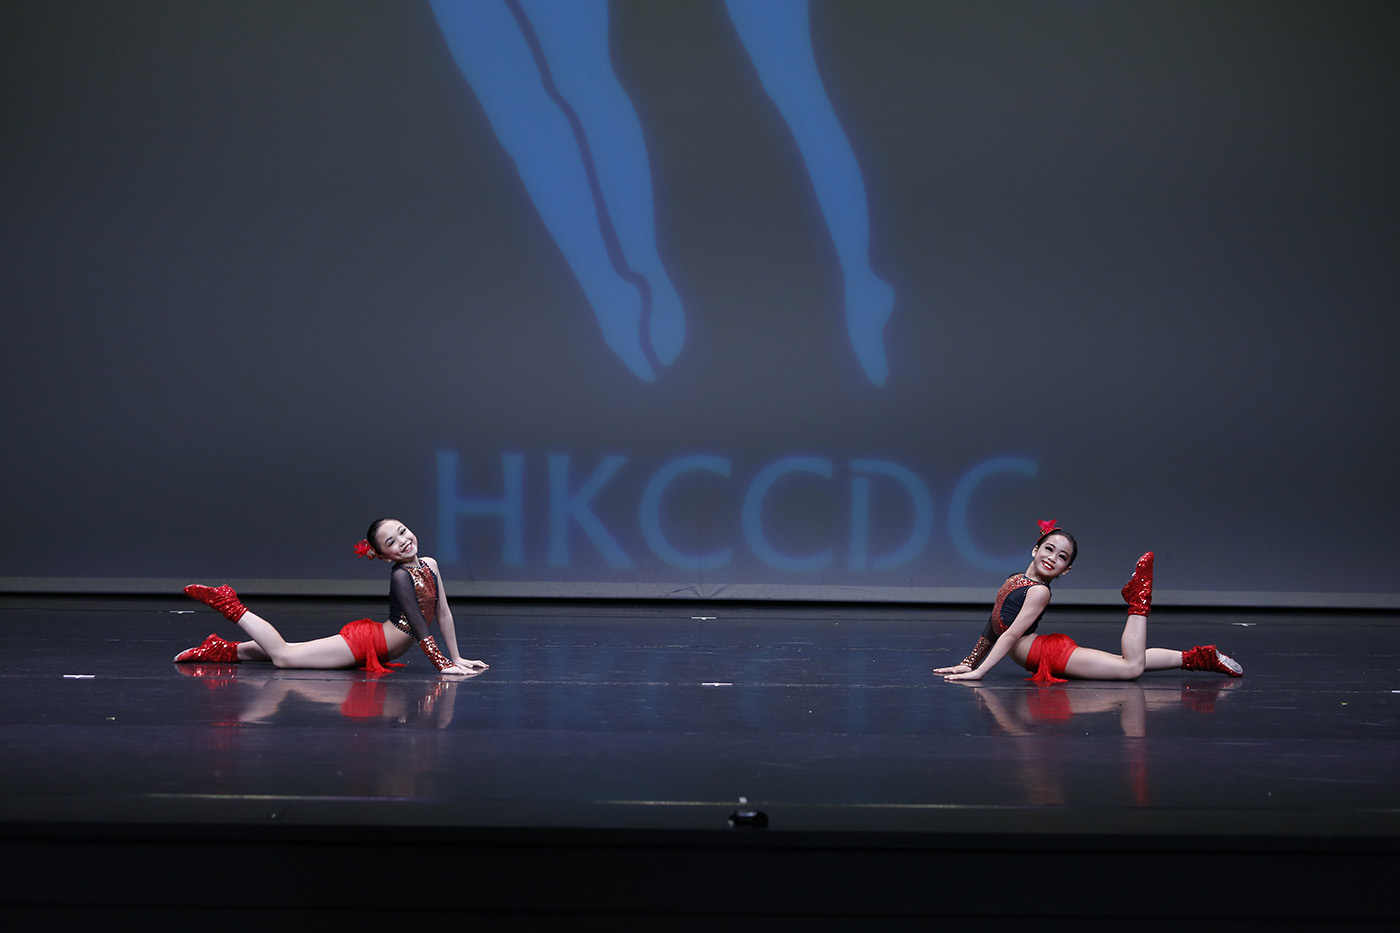 PASSION. Sophia Marie Lily A. Lucito and Herbie Amber Arbo Bobier win gold medals with their performance at the 8th annual Hong Kong Challenge Cup Dance Competition, held at Y Theatre in Chai Wan, Hong Kong. Photo courtesy of Dance Theatre Arts Philippines